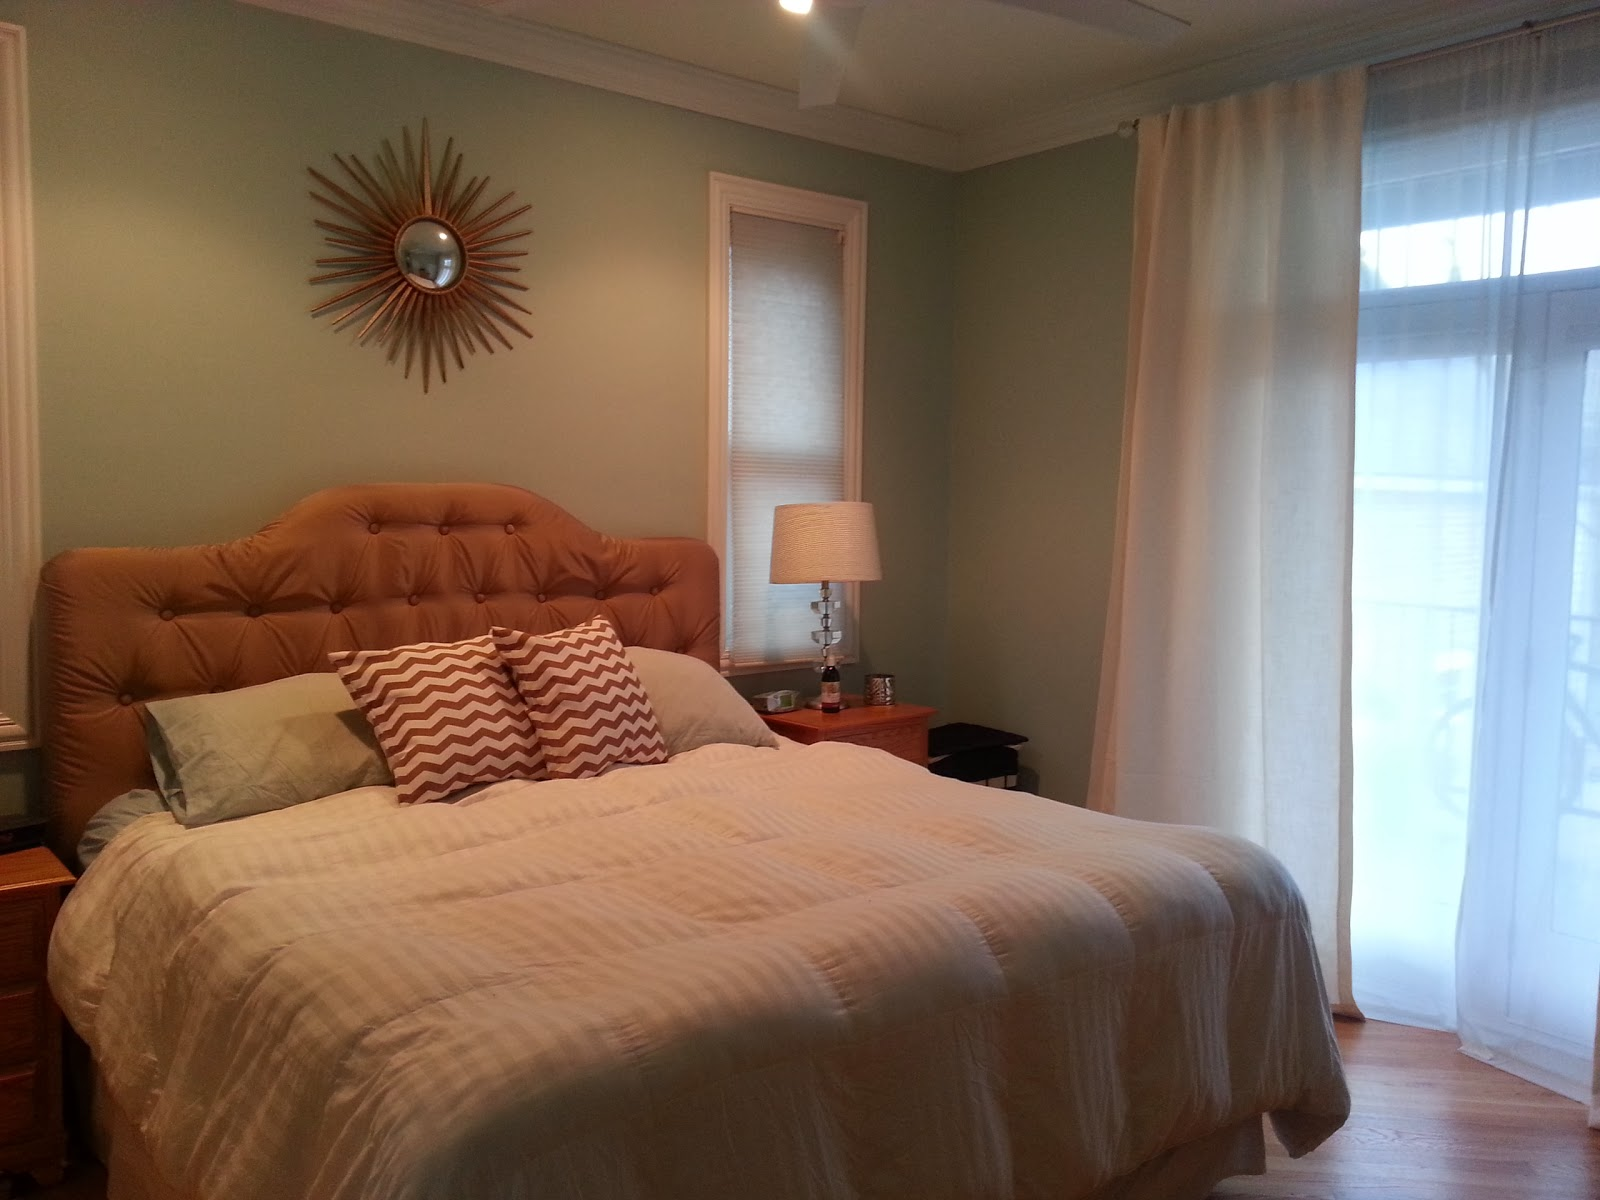 Sea Salt Lamp Bed Bath And Beyond : Lifestyle Blargh: My bedroom is like a butterfly